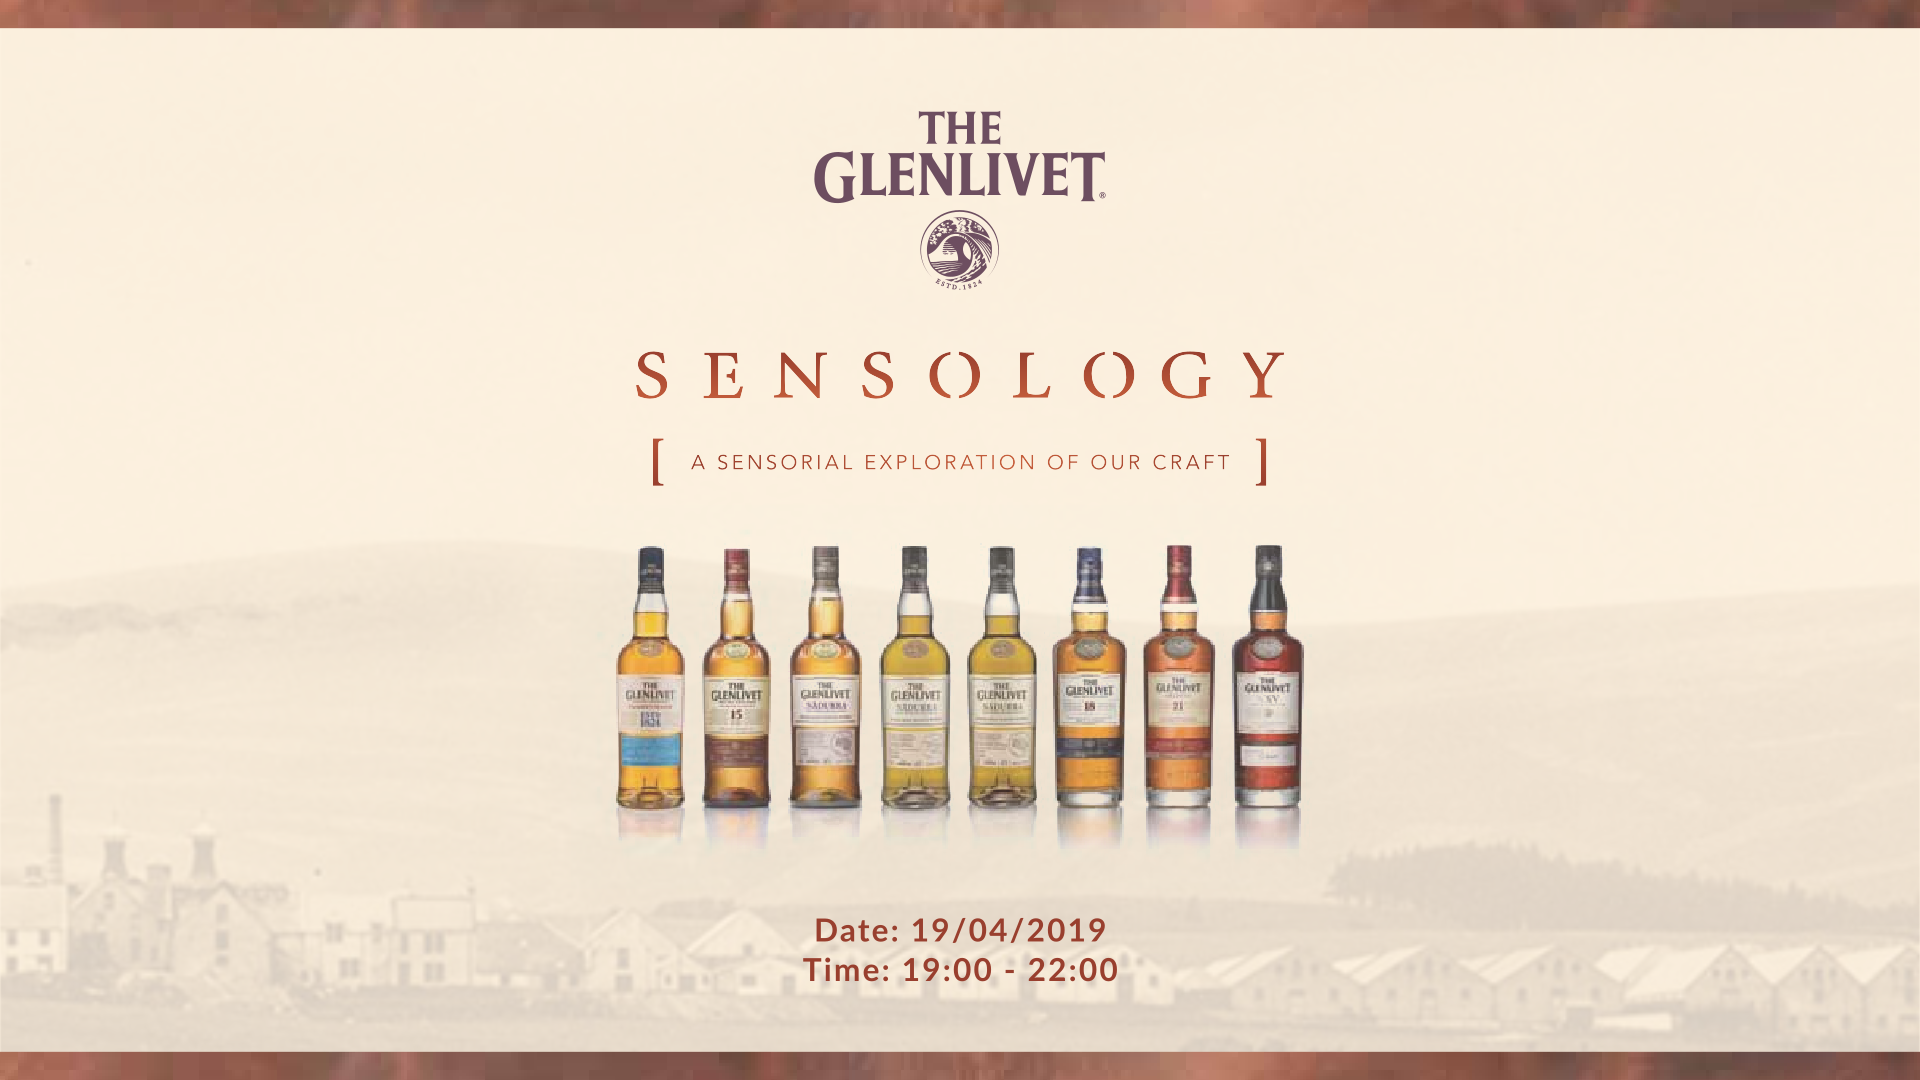 The Glenlivet Sensology